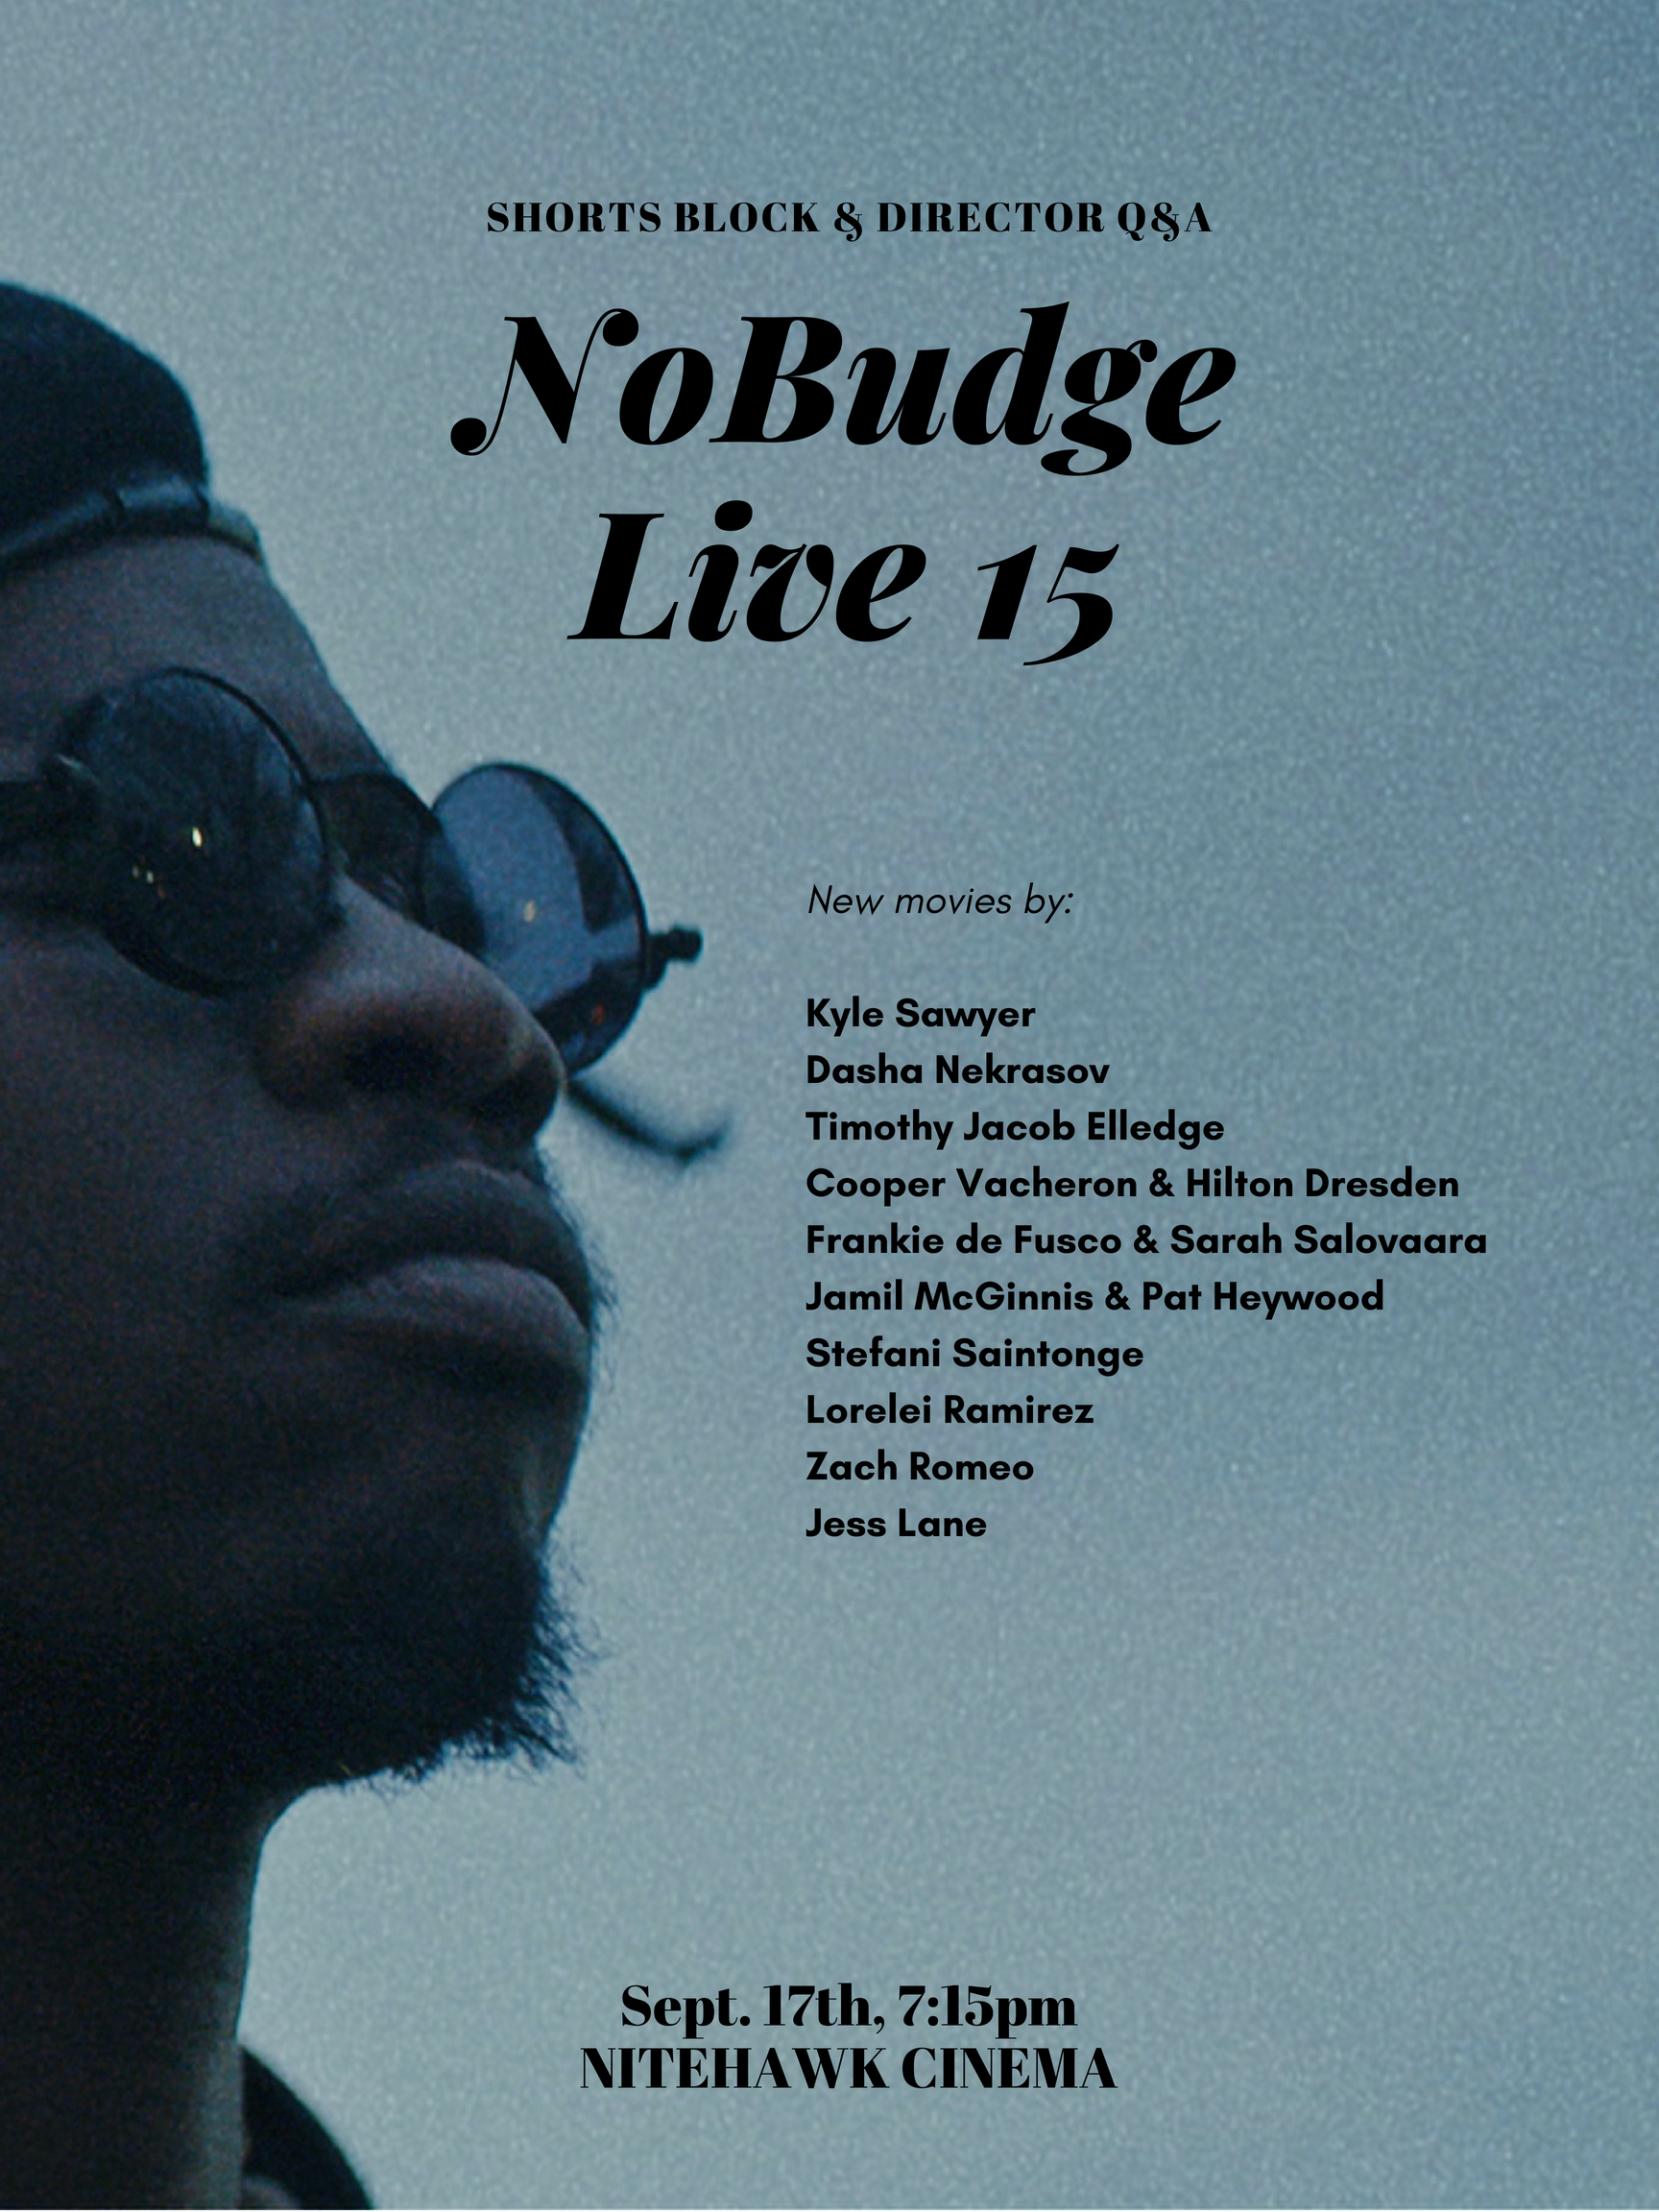 Poster for NoBudge Live #15